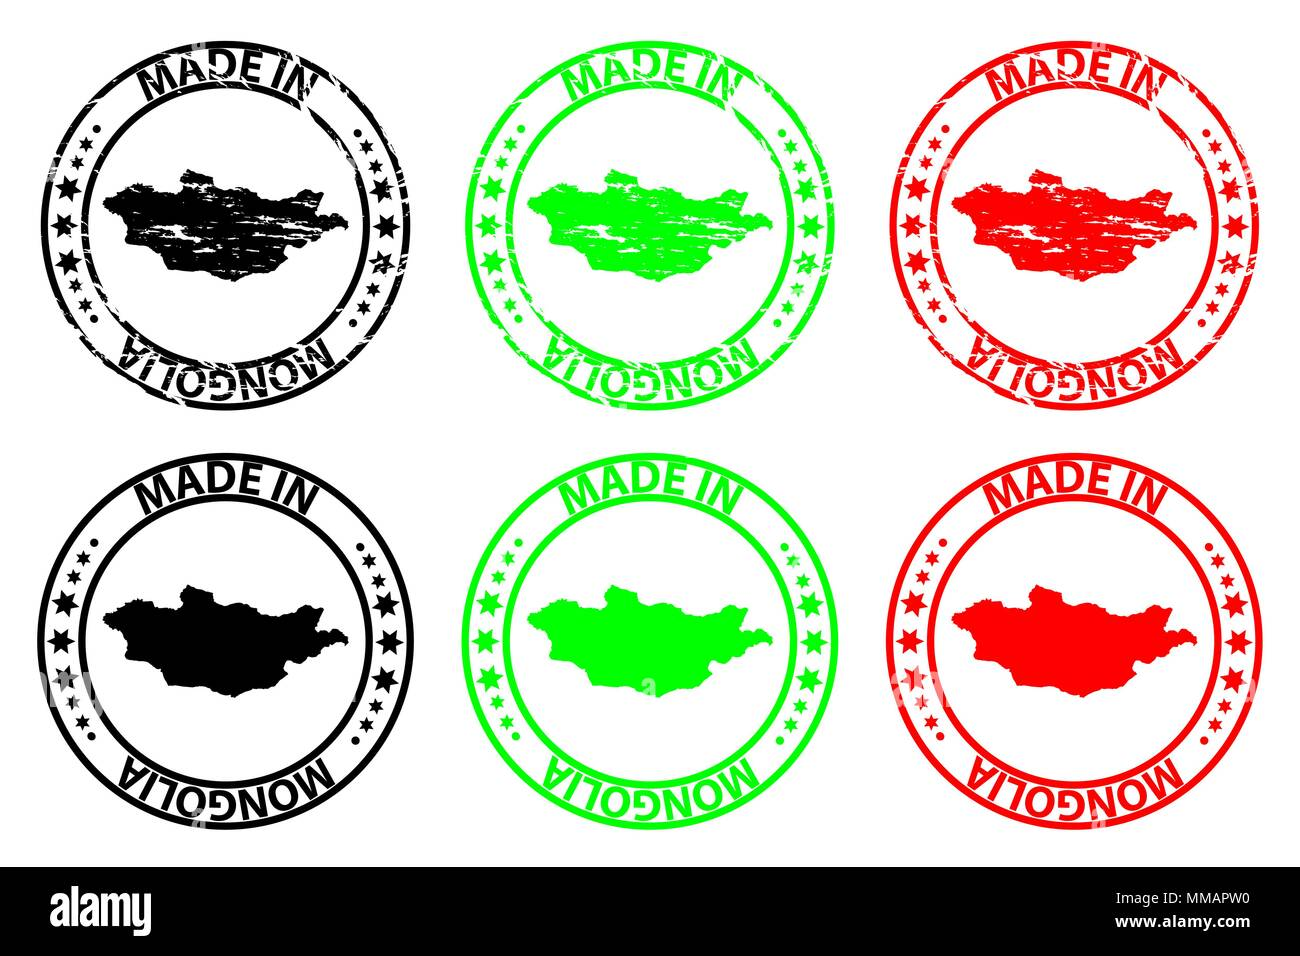 Made in Mongolia - rubber stamp - vector, Mongolia map pattern - black, green and red - Stock Vector